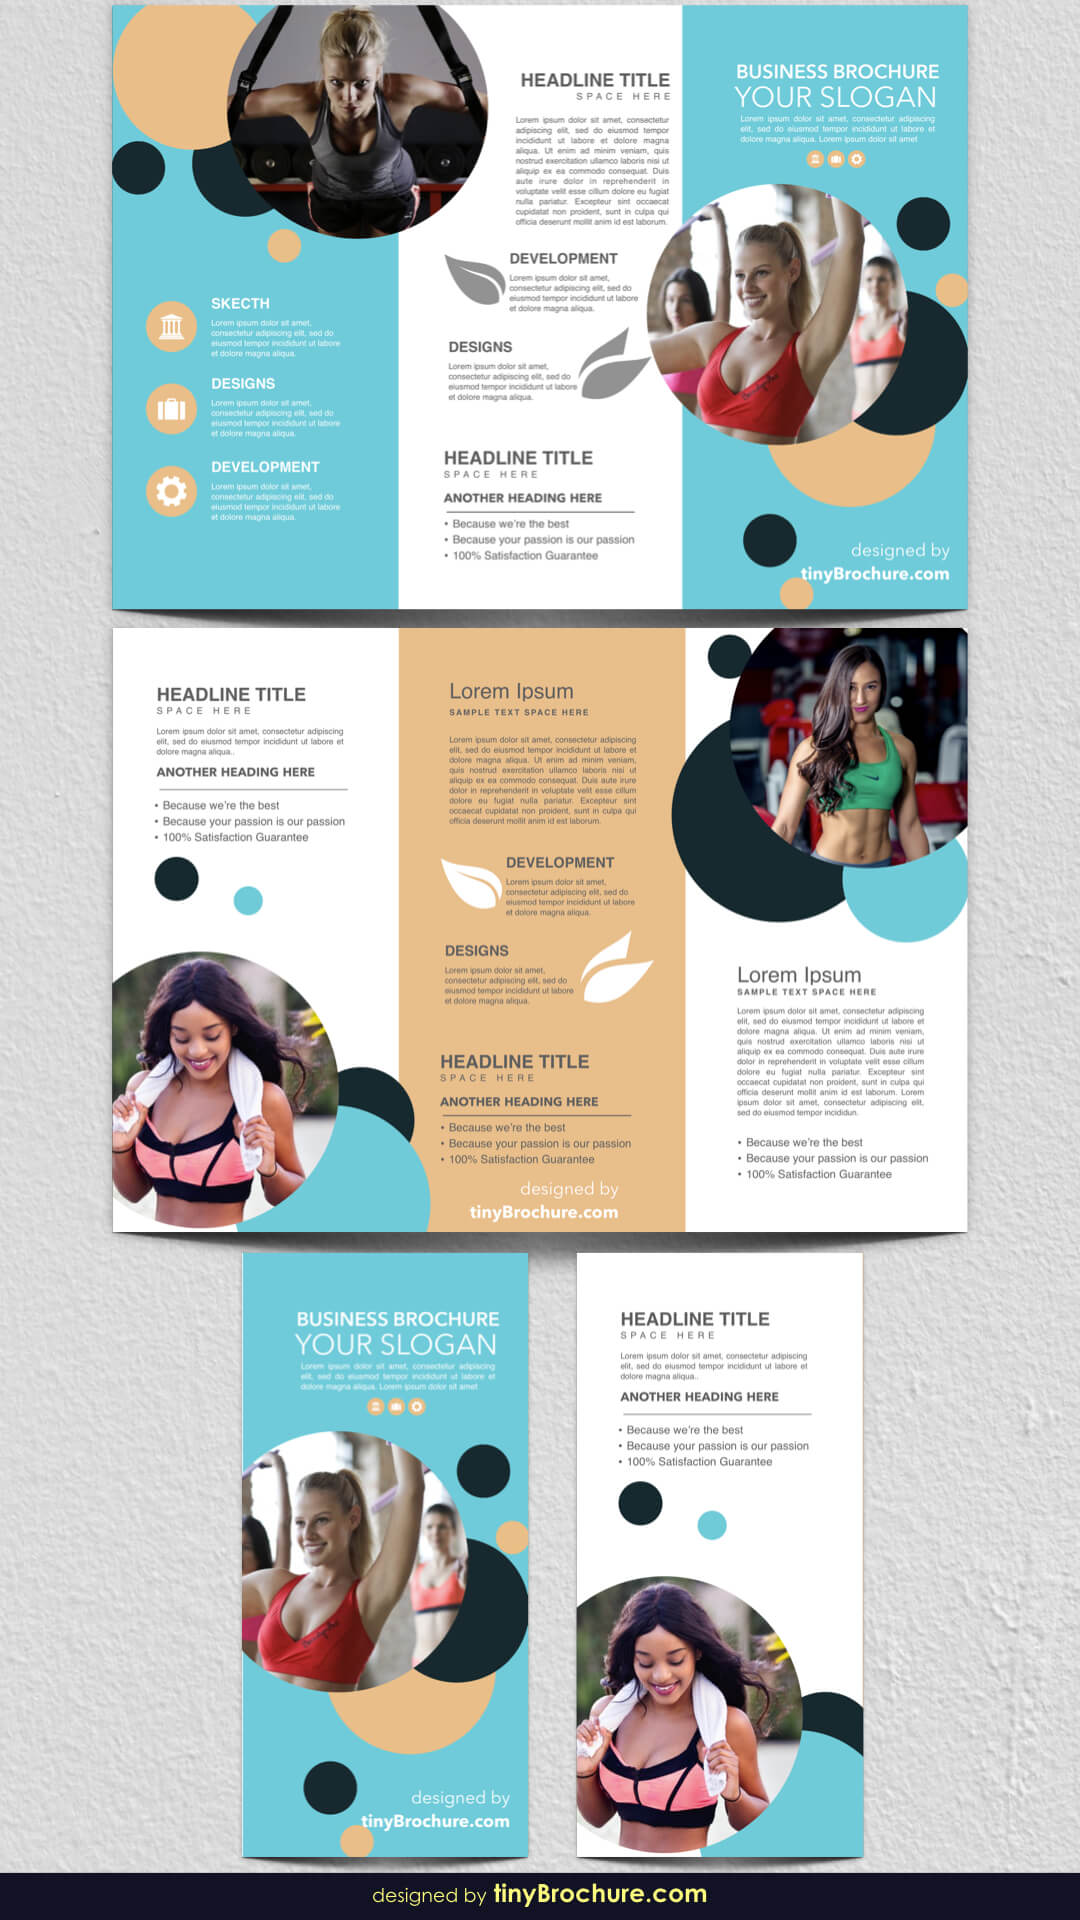 How To Make A Brochure On Microsoft Word 2007 | Design for Booklet Template Microsoft Word 2007